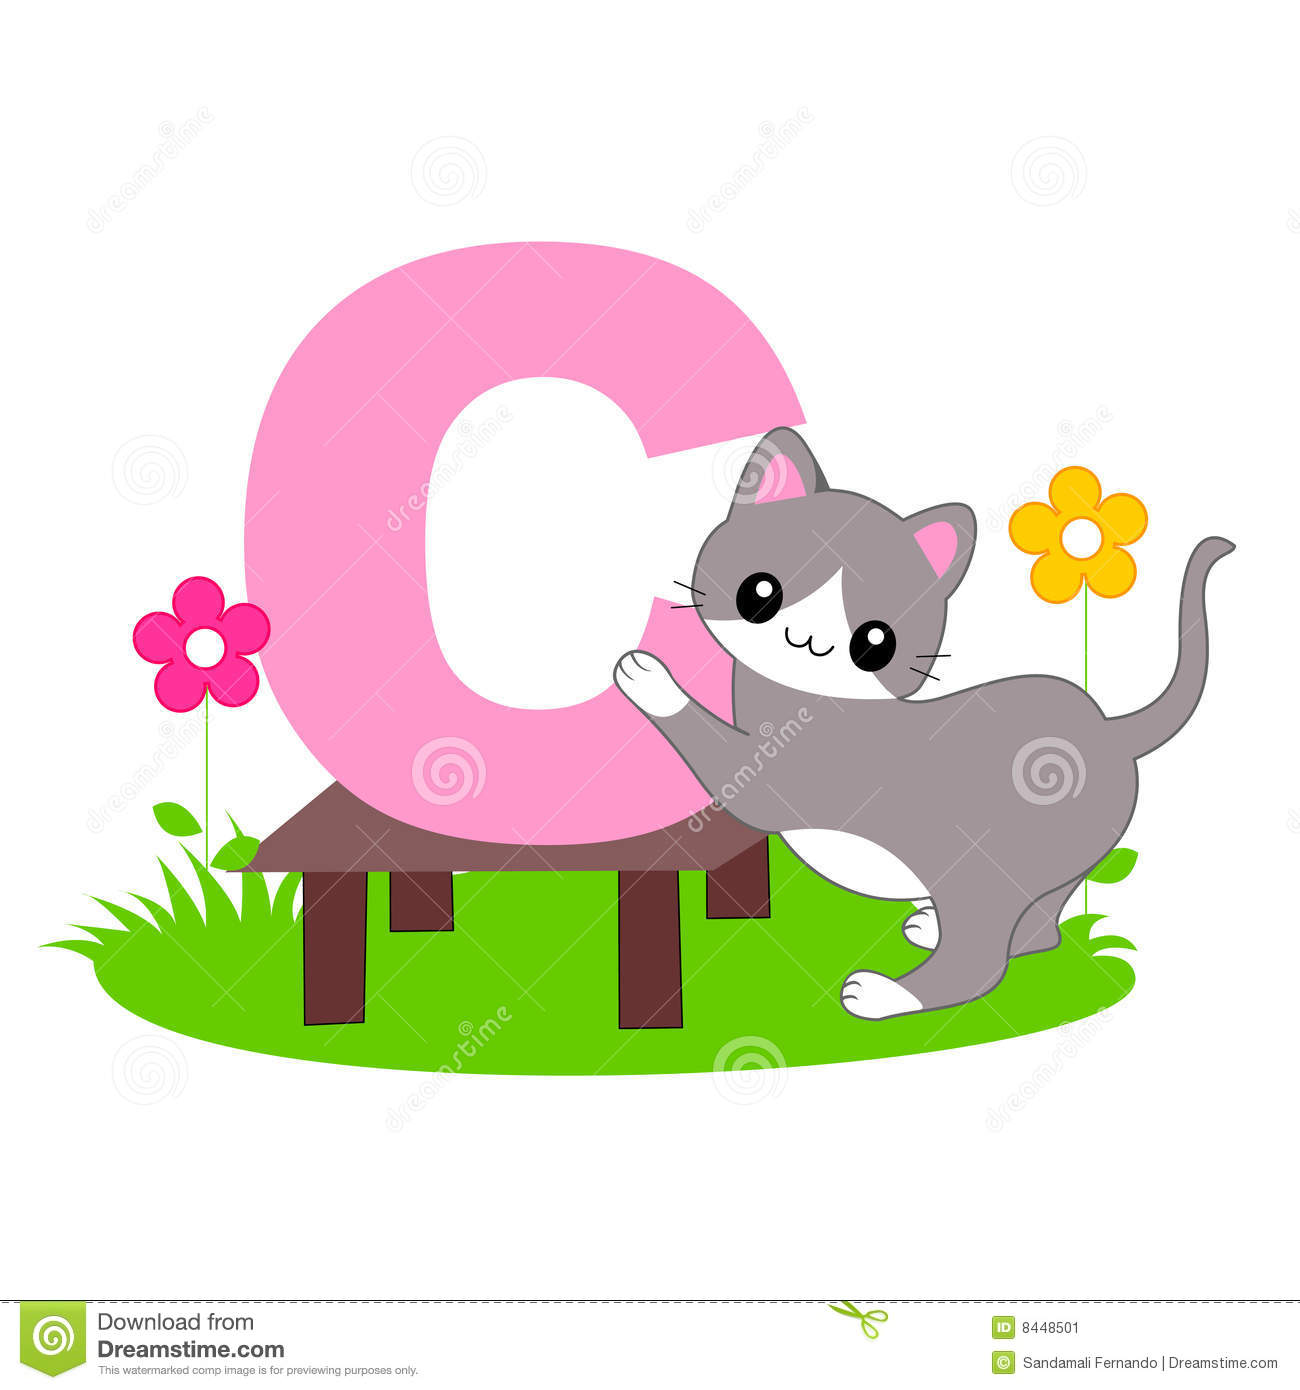 Animal clipart alphabet letters. Letter c stock image